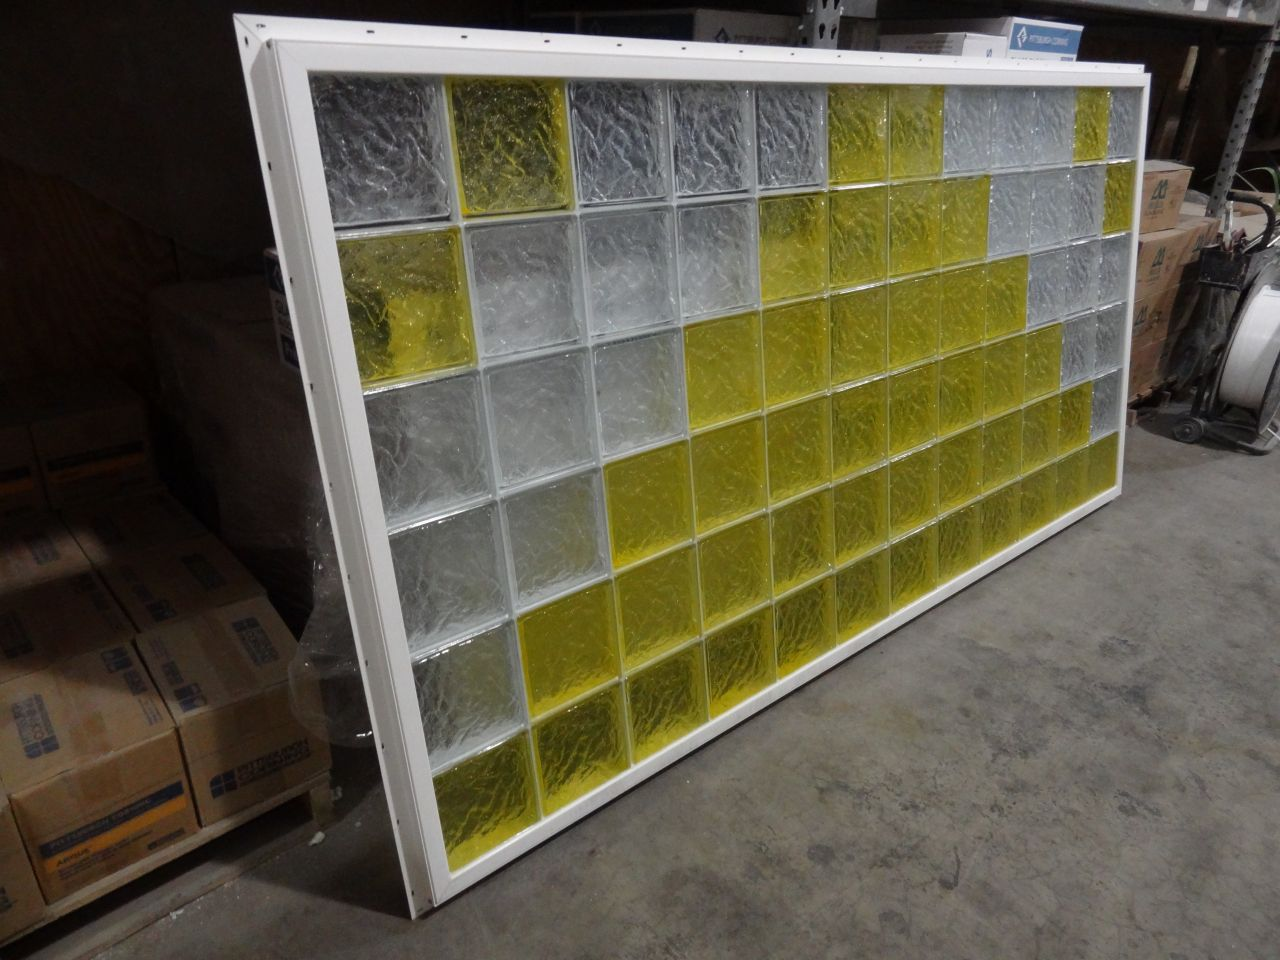 Vinyl framed glass block window for bathrooms, kitchens, garage and ...